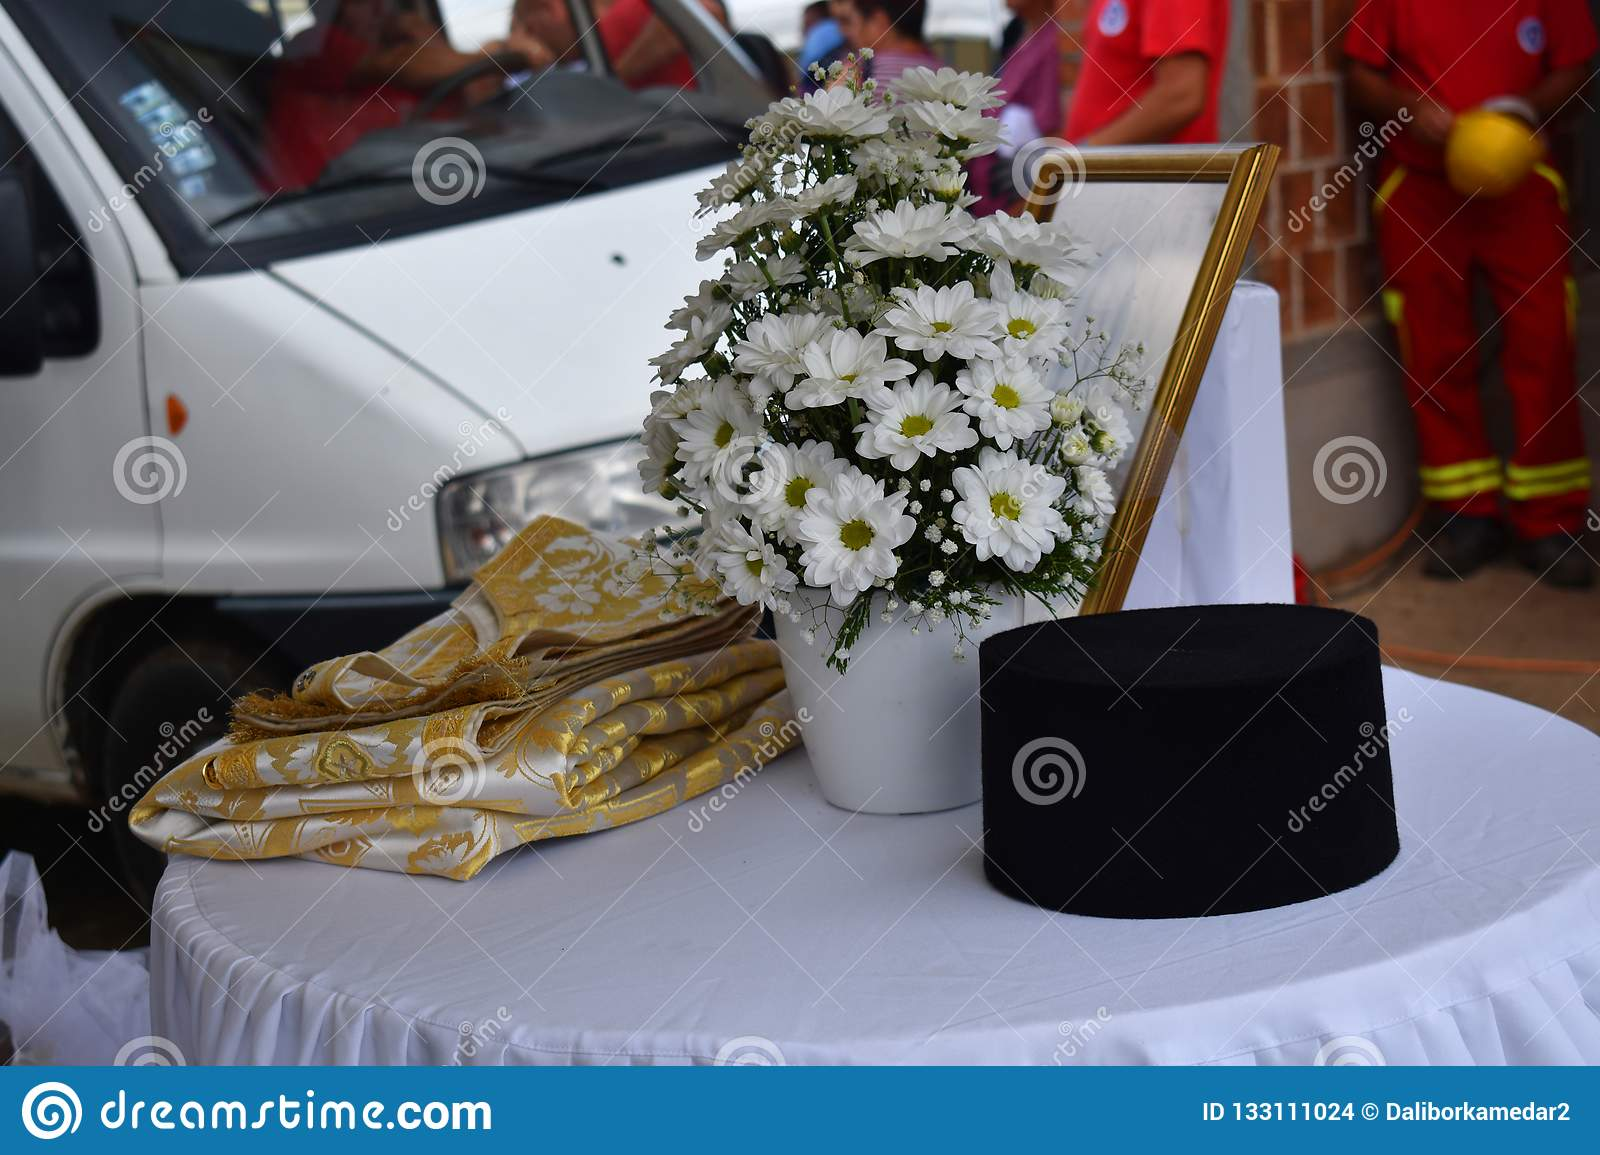 Flowers, cloths and caps of priests.